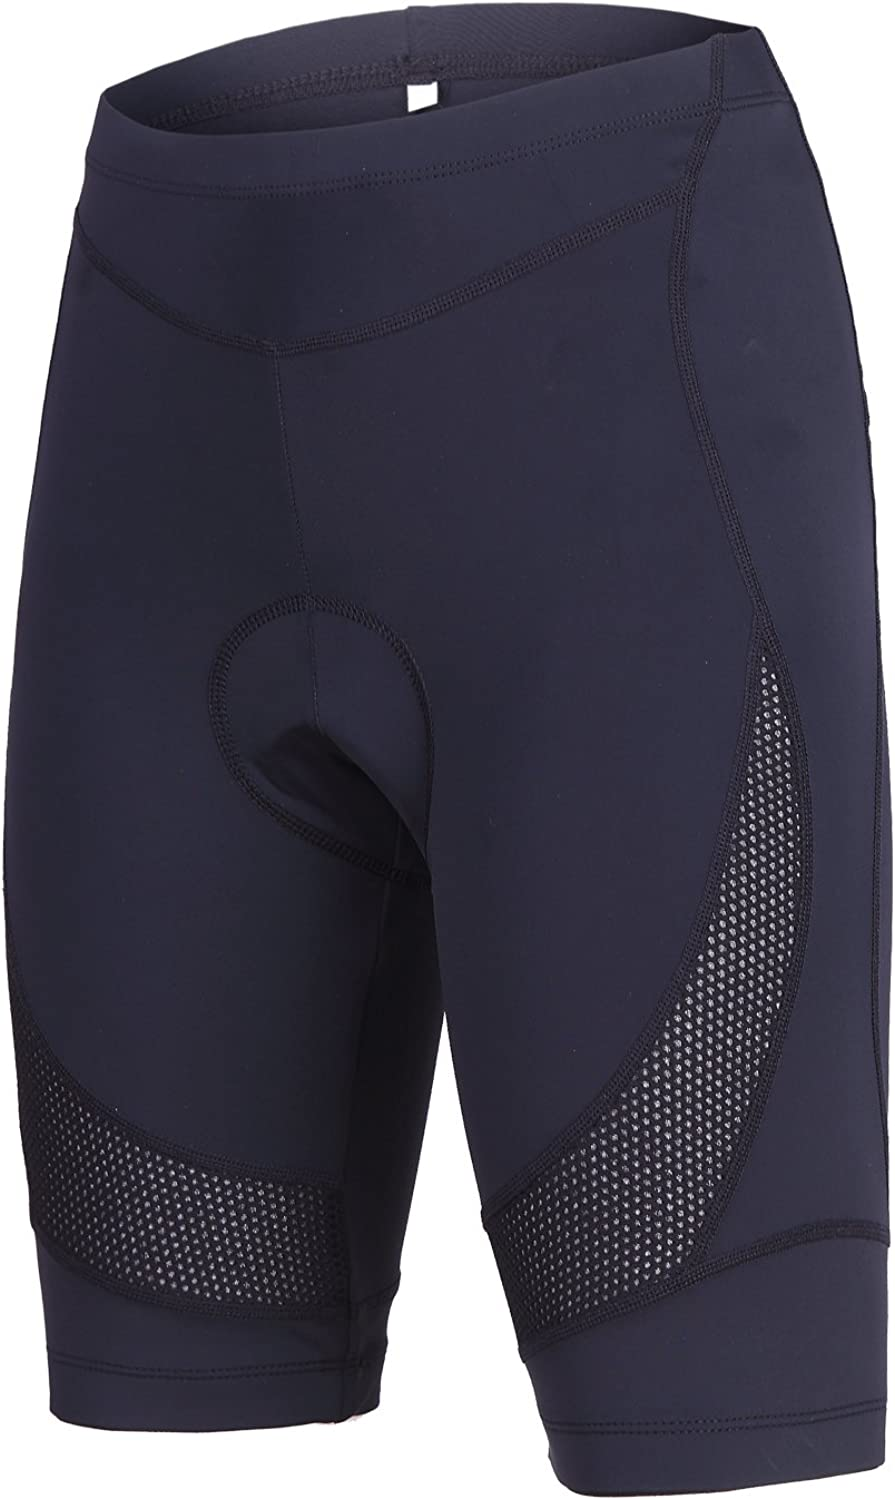 beroy Womens Bike Shorts with 3D Gel Padded,Cycling Women's Shorts : Sports & Outdoors